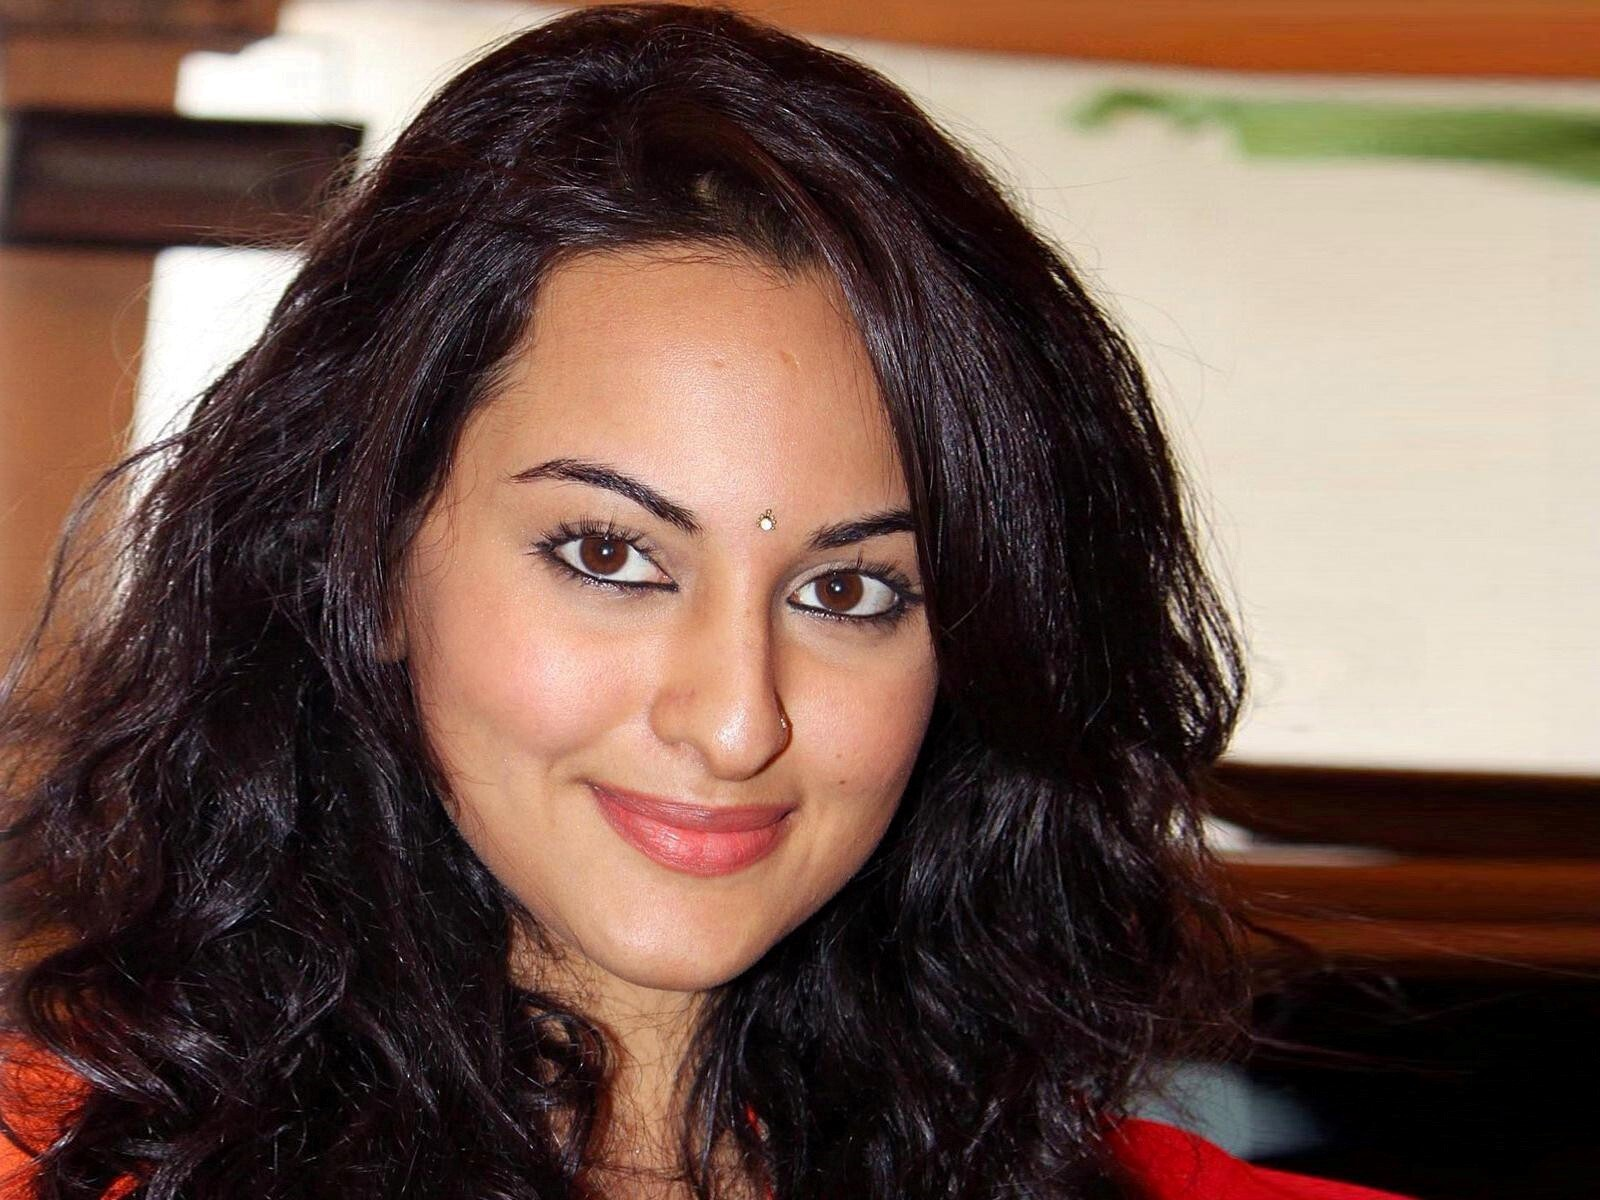 sonakshi sinha face closeup | hd wallpapers